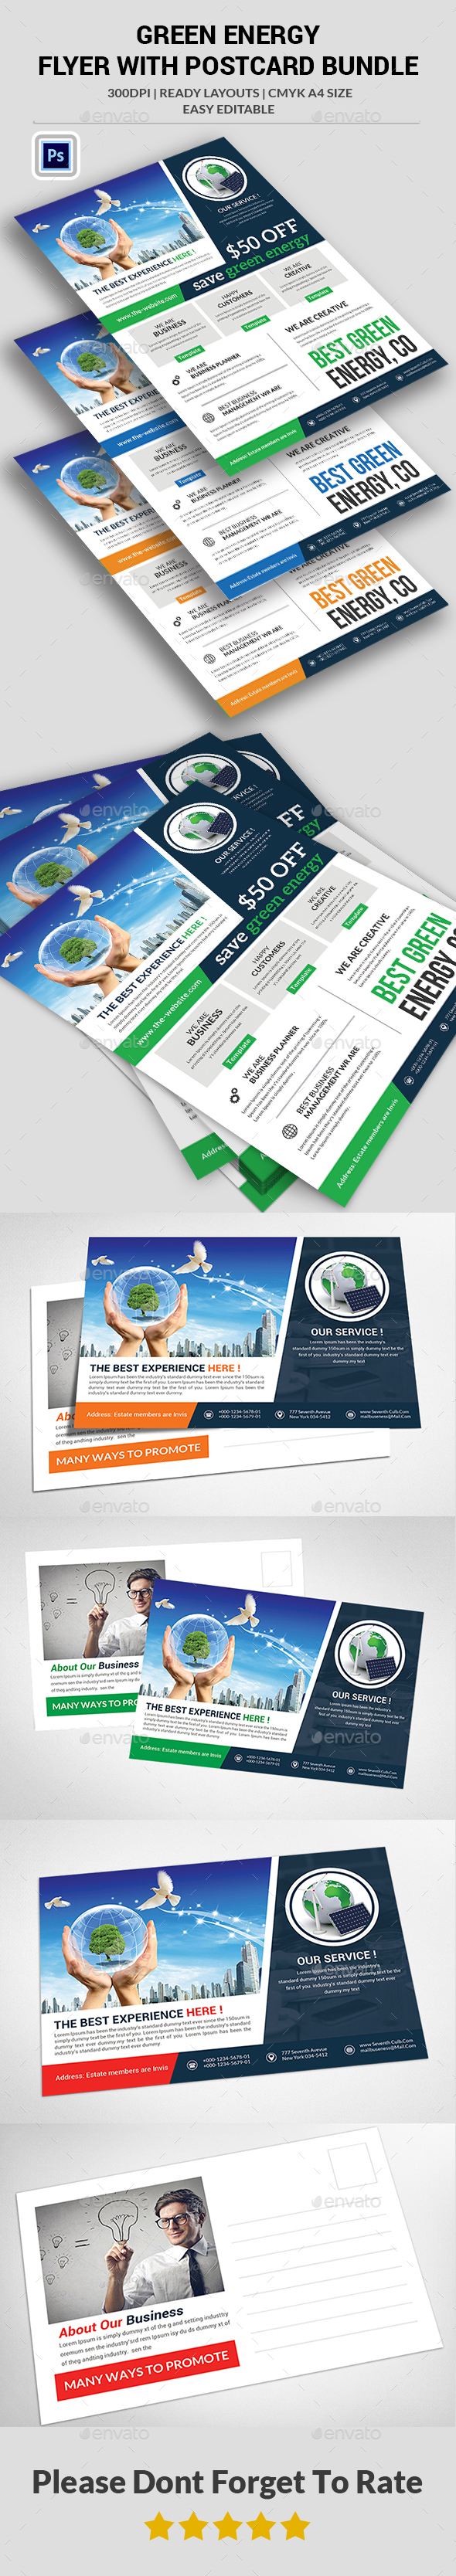 Green Energy  Flyer With Postcard Bundle  - Corporate Flyers